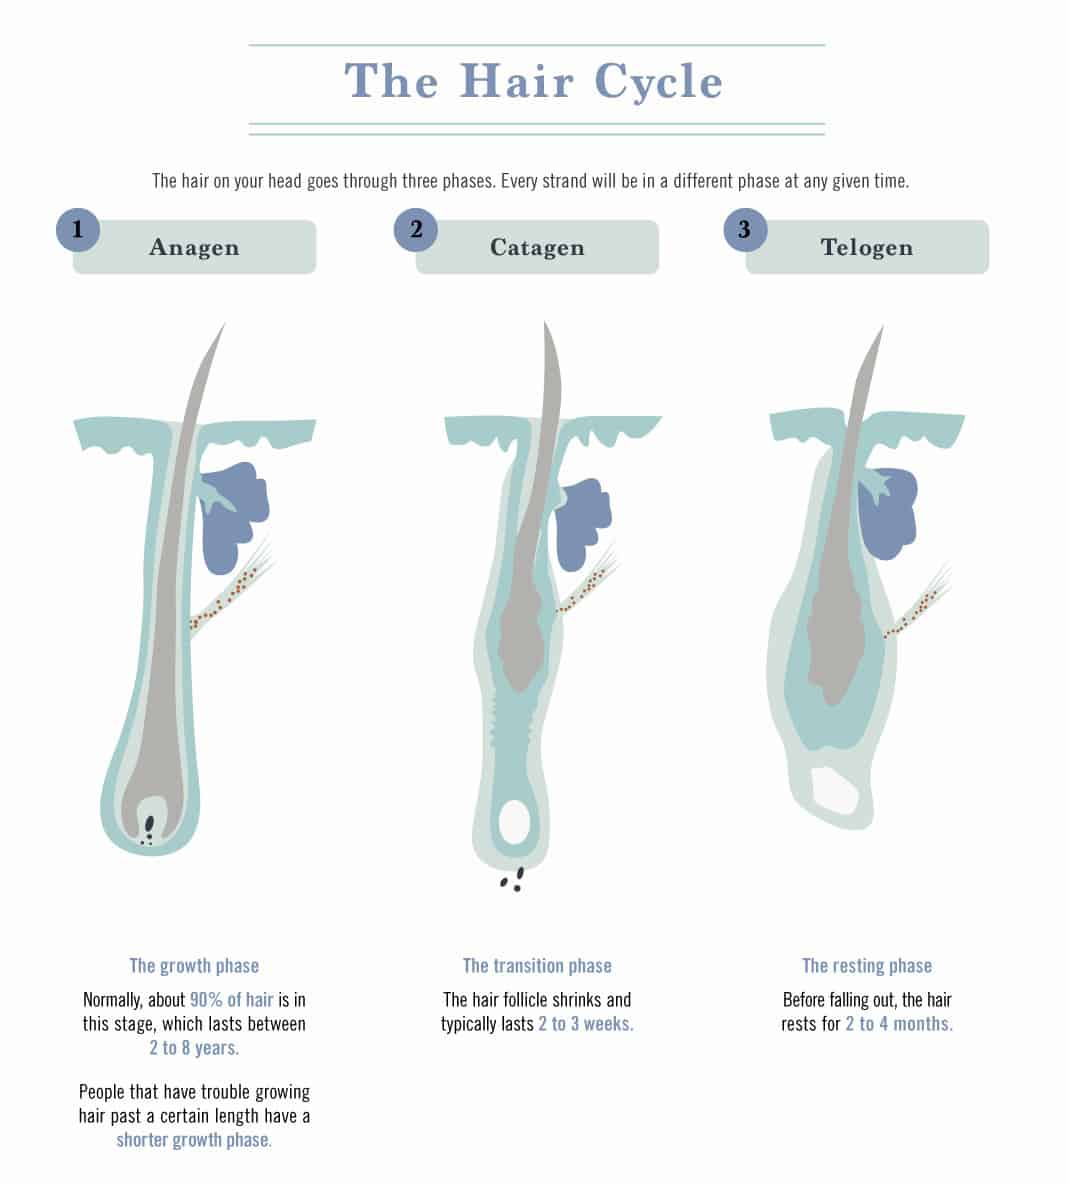 The Hair Cycle